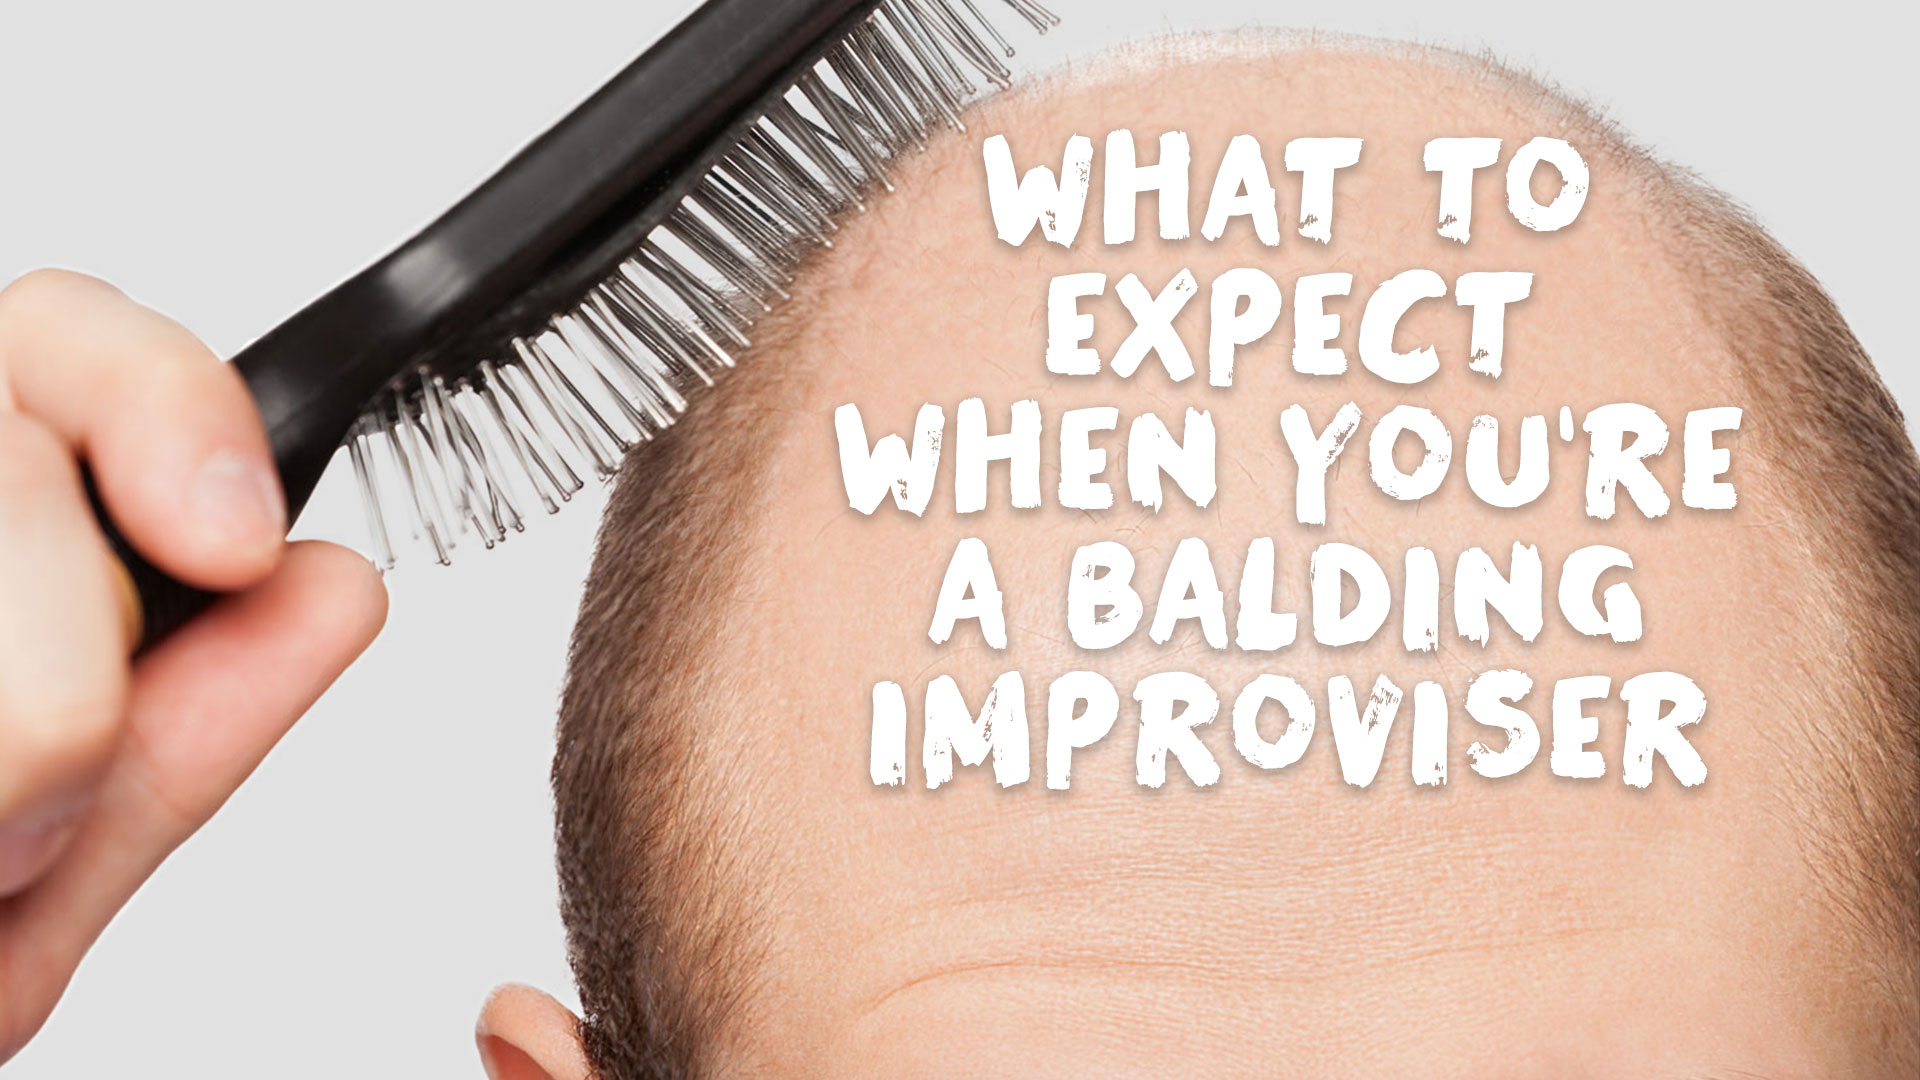 What to Expect When You're a Balding Improviser